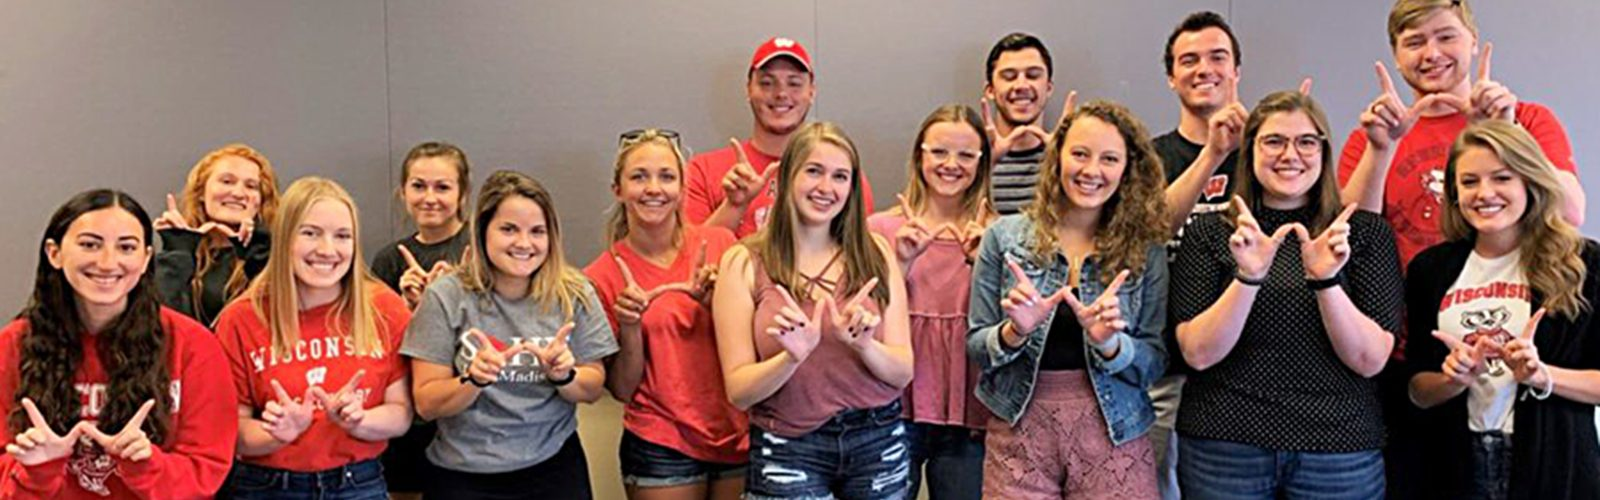 """Group of BadgerSense peer educators, wearing UW–Madison shirts, smiling and making a """"W"""" shape with their hands."""